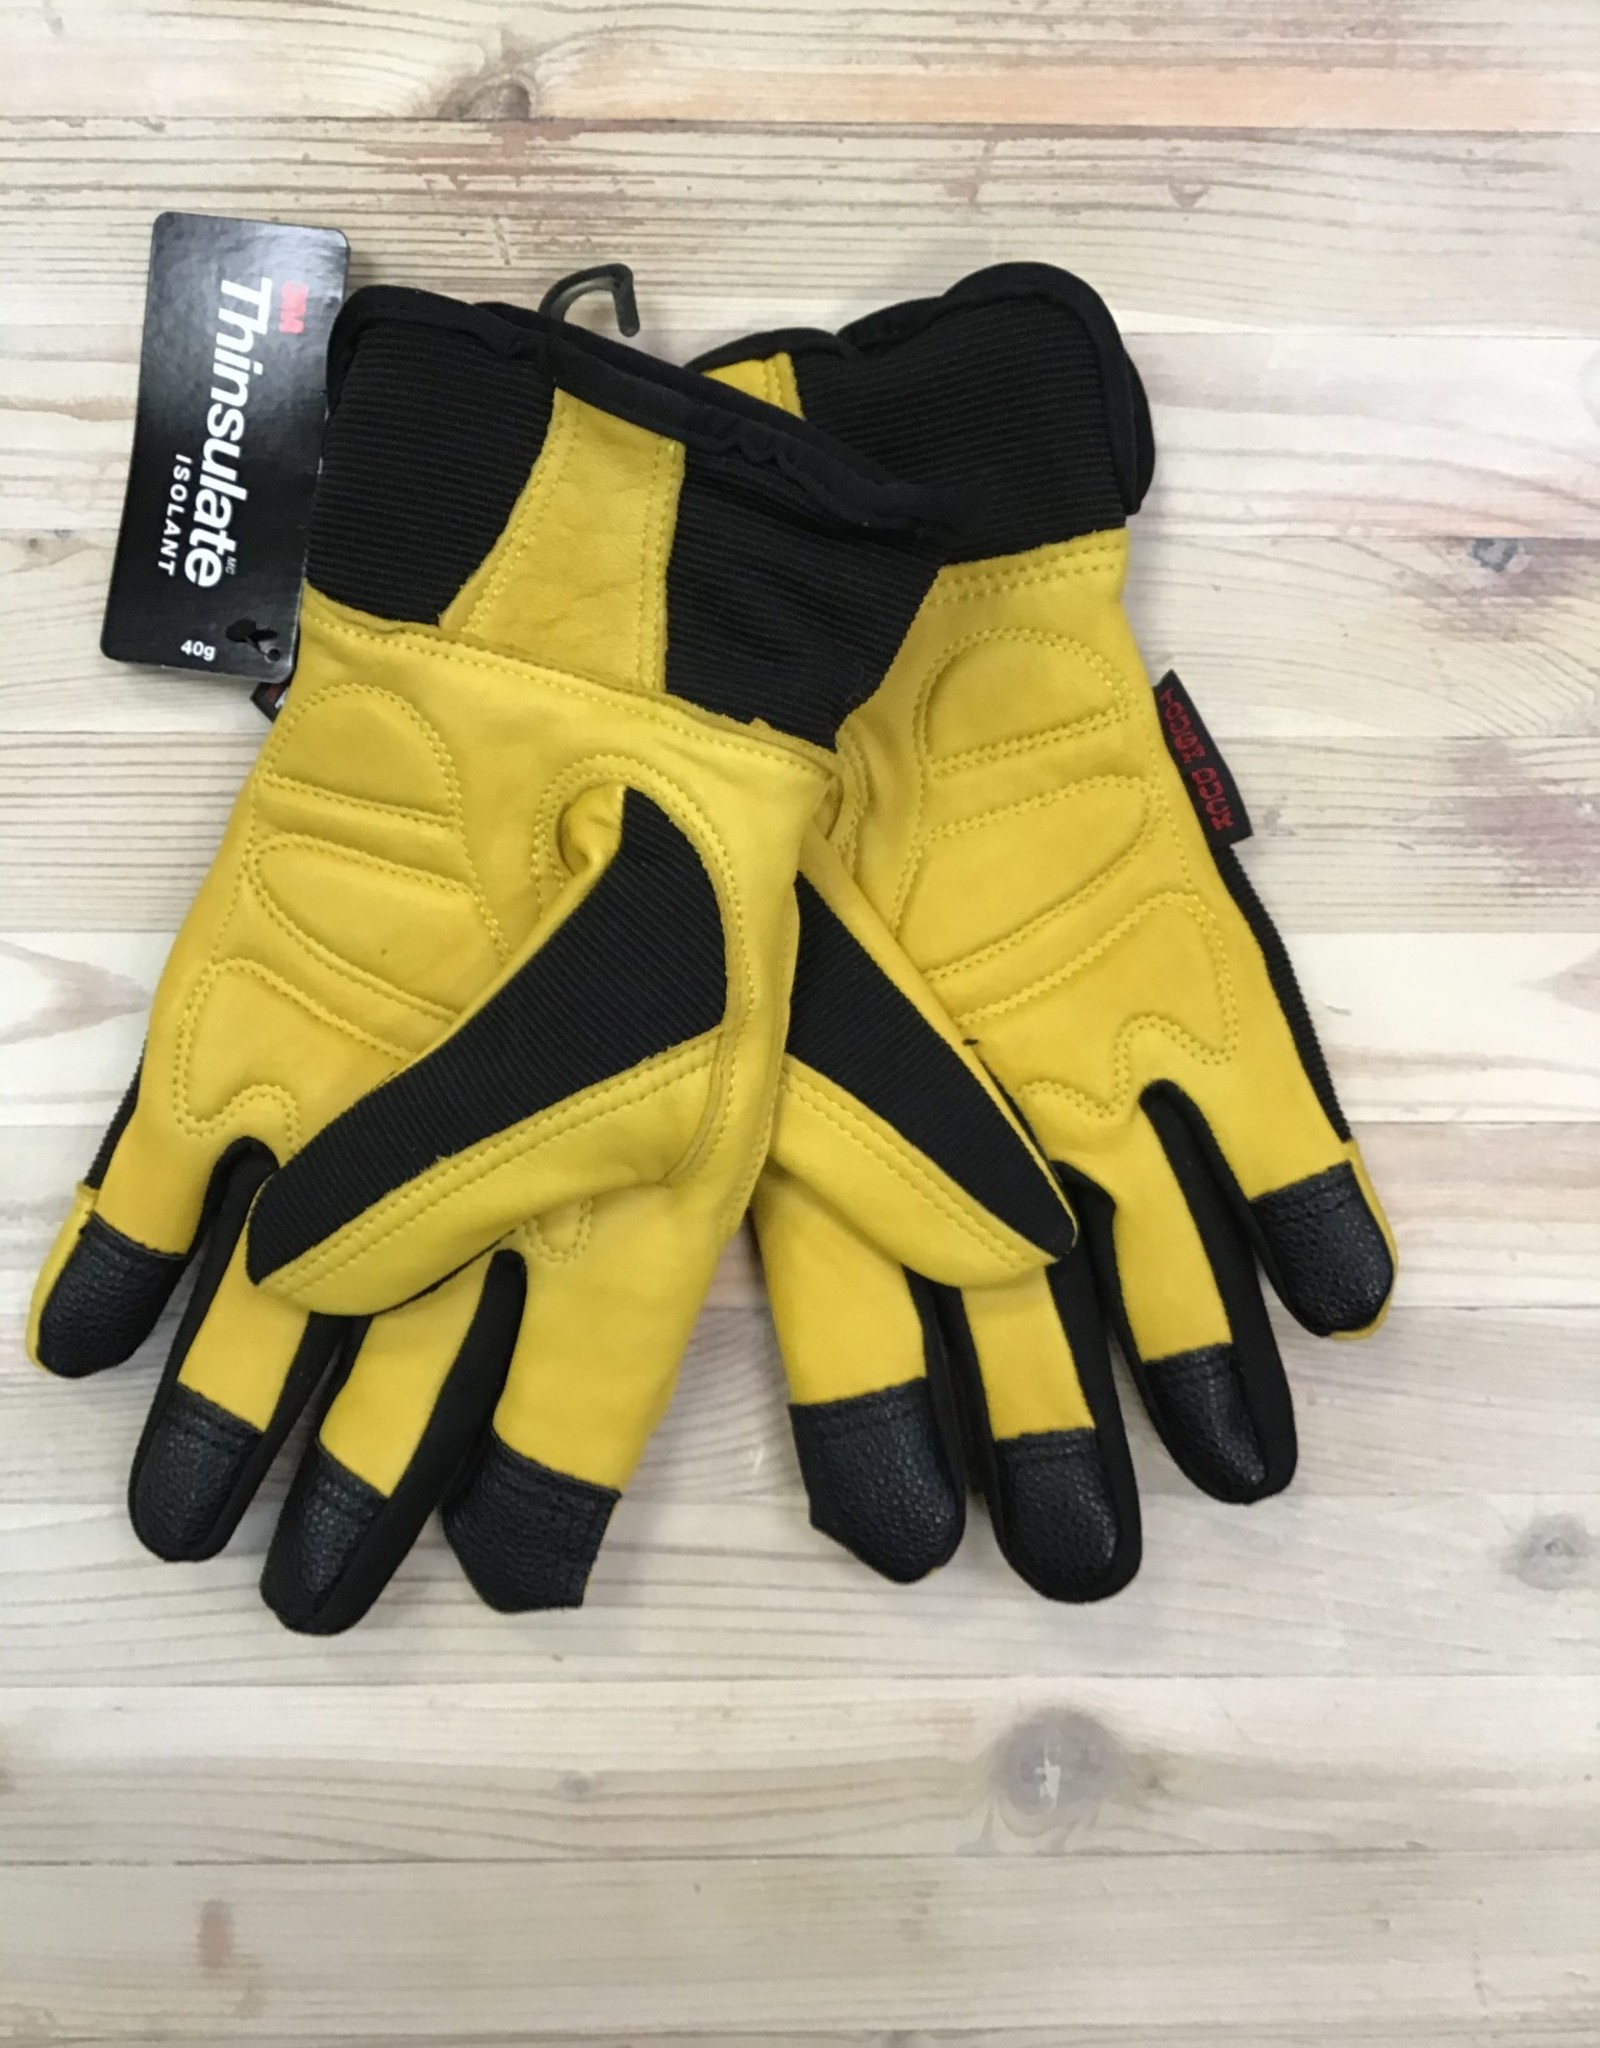 Tough Duck Tough Duck 00068 Insulated Work Gloves